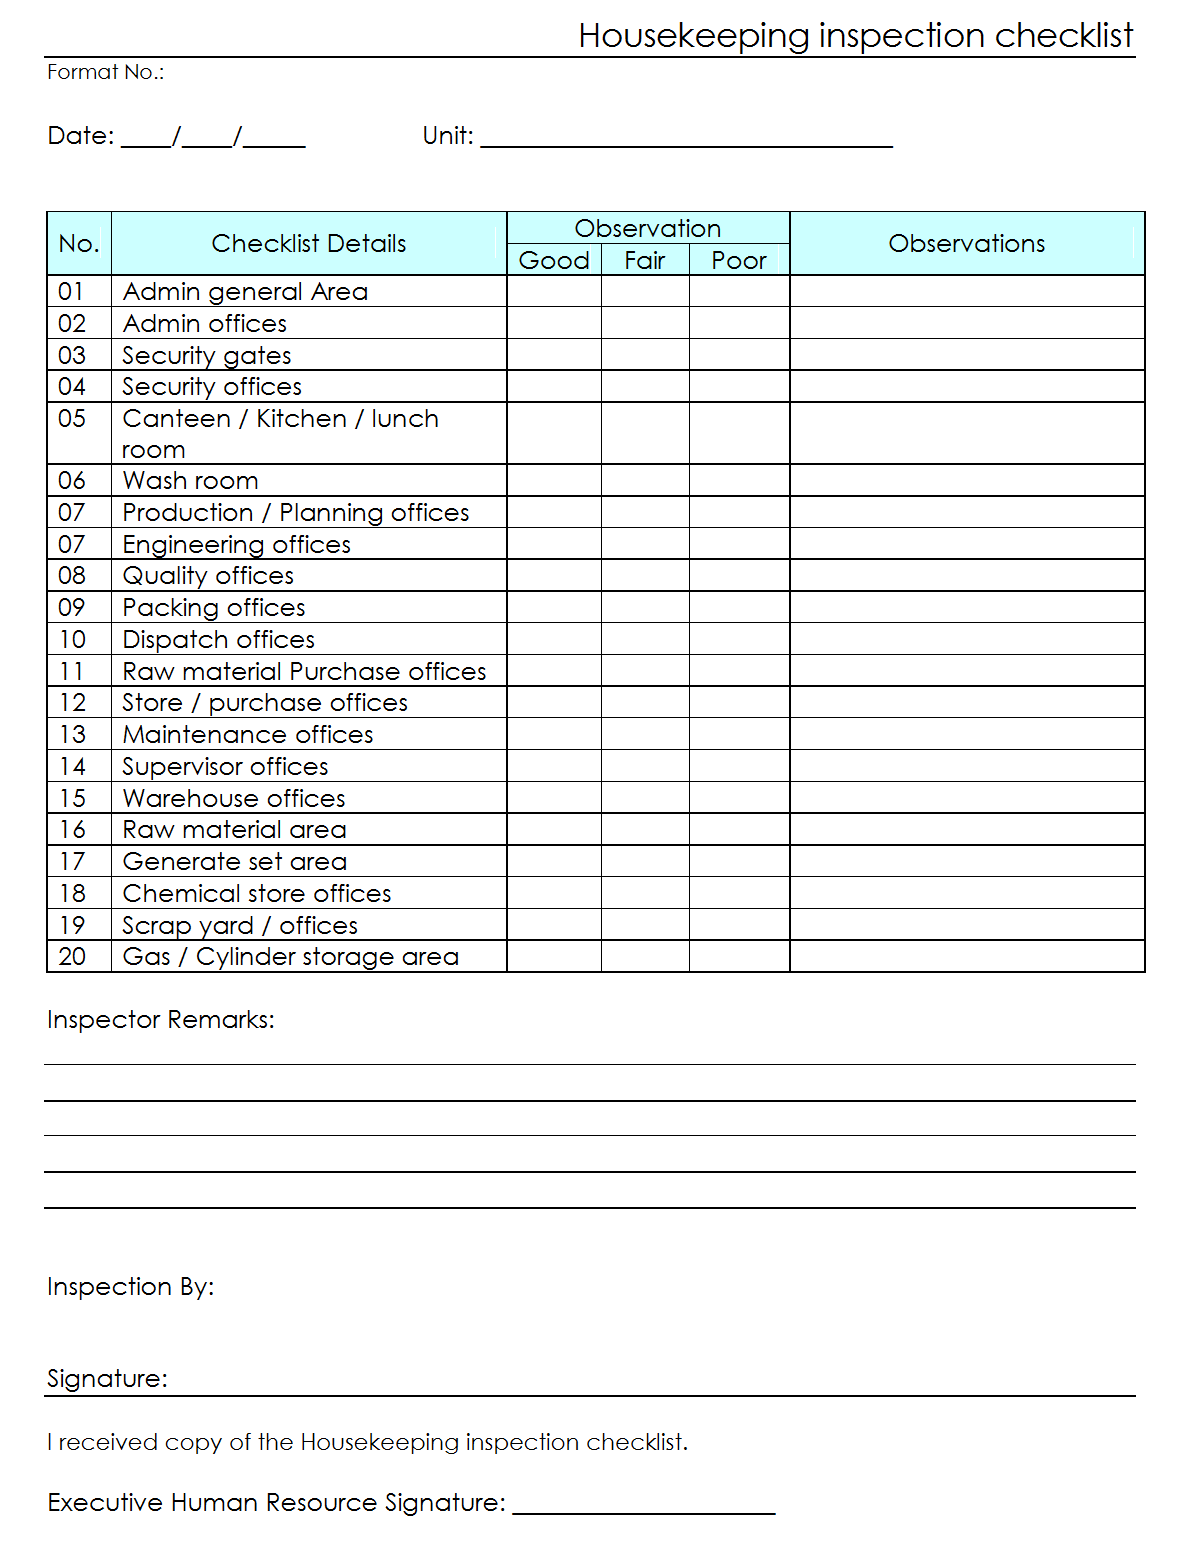 Workplace Housekeeping Inspection Checklist For Factory